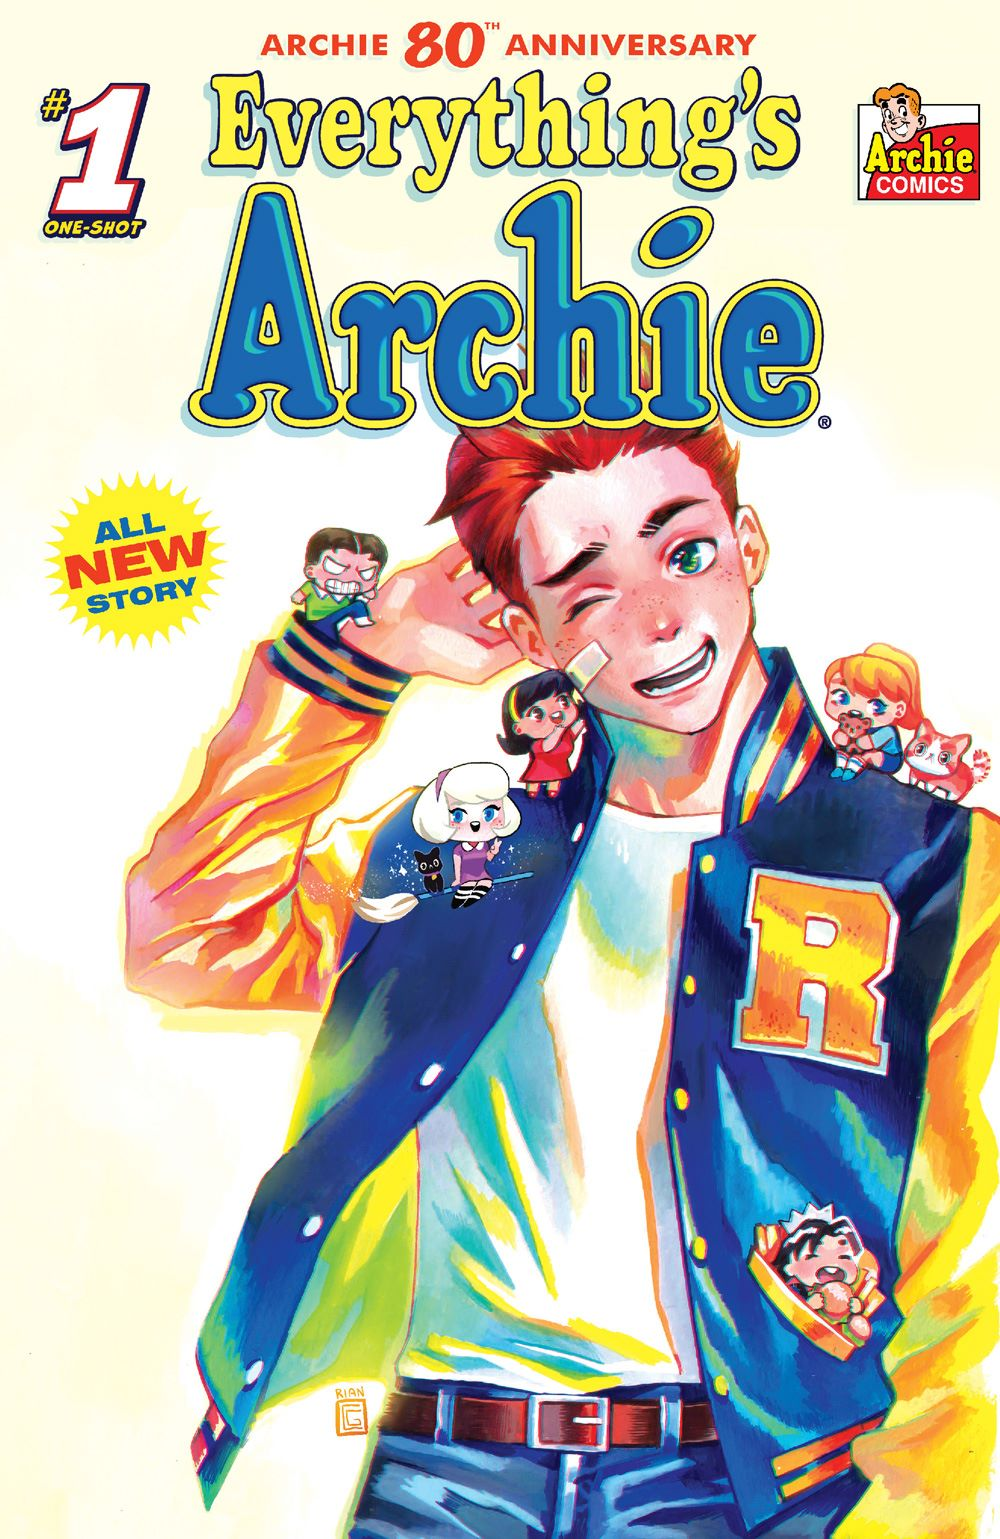 EverythingsArchie_01_CoverC_Gonzales ComicList Previews: ARCHIE 80TH ANNIVERSARY EVERYTHING'S ARCHIE #1